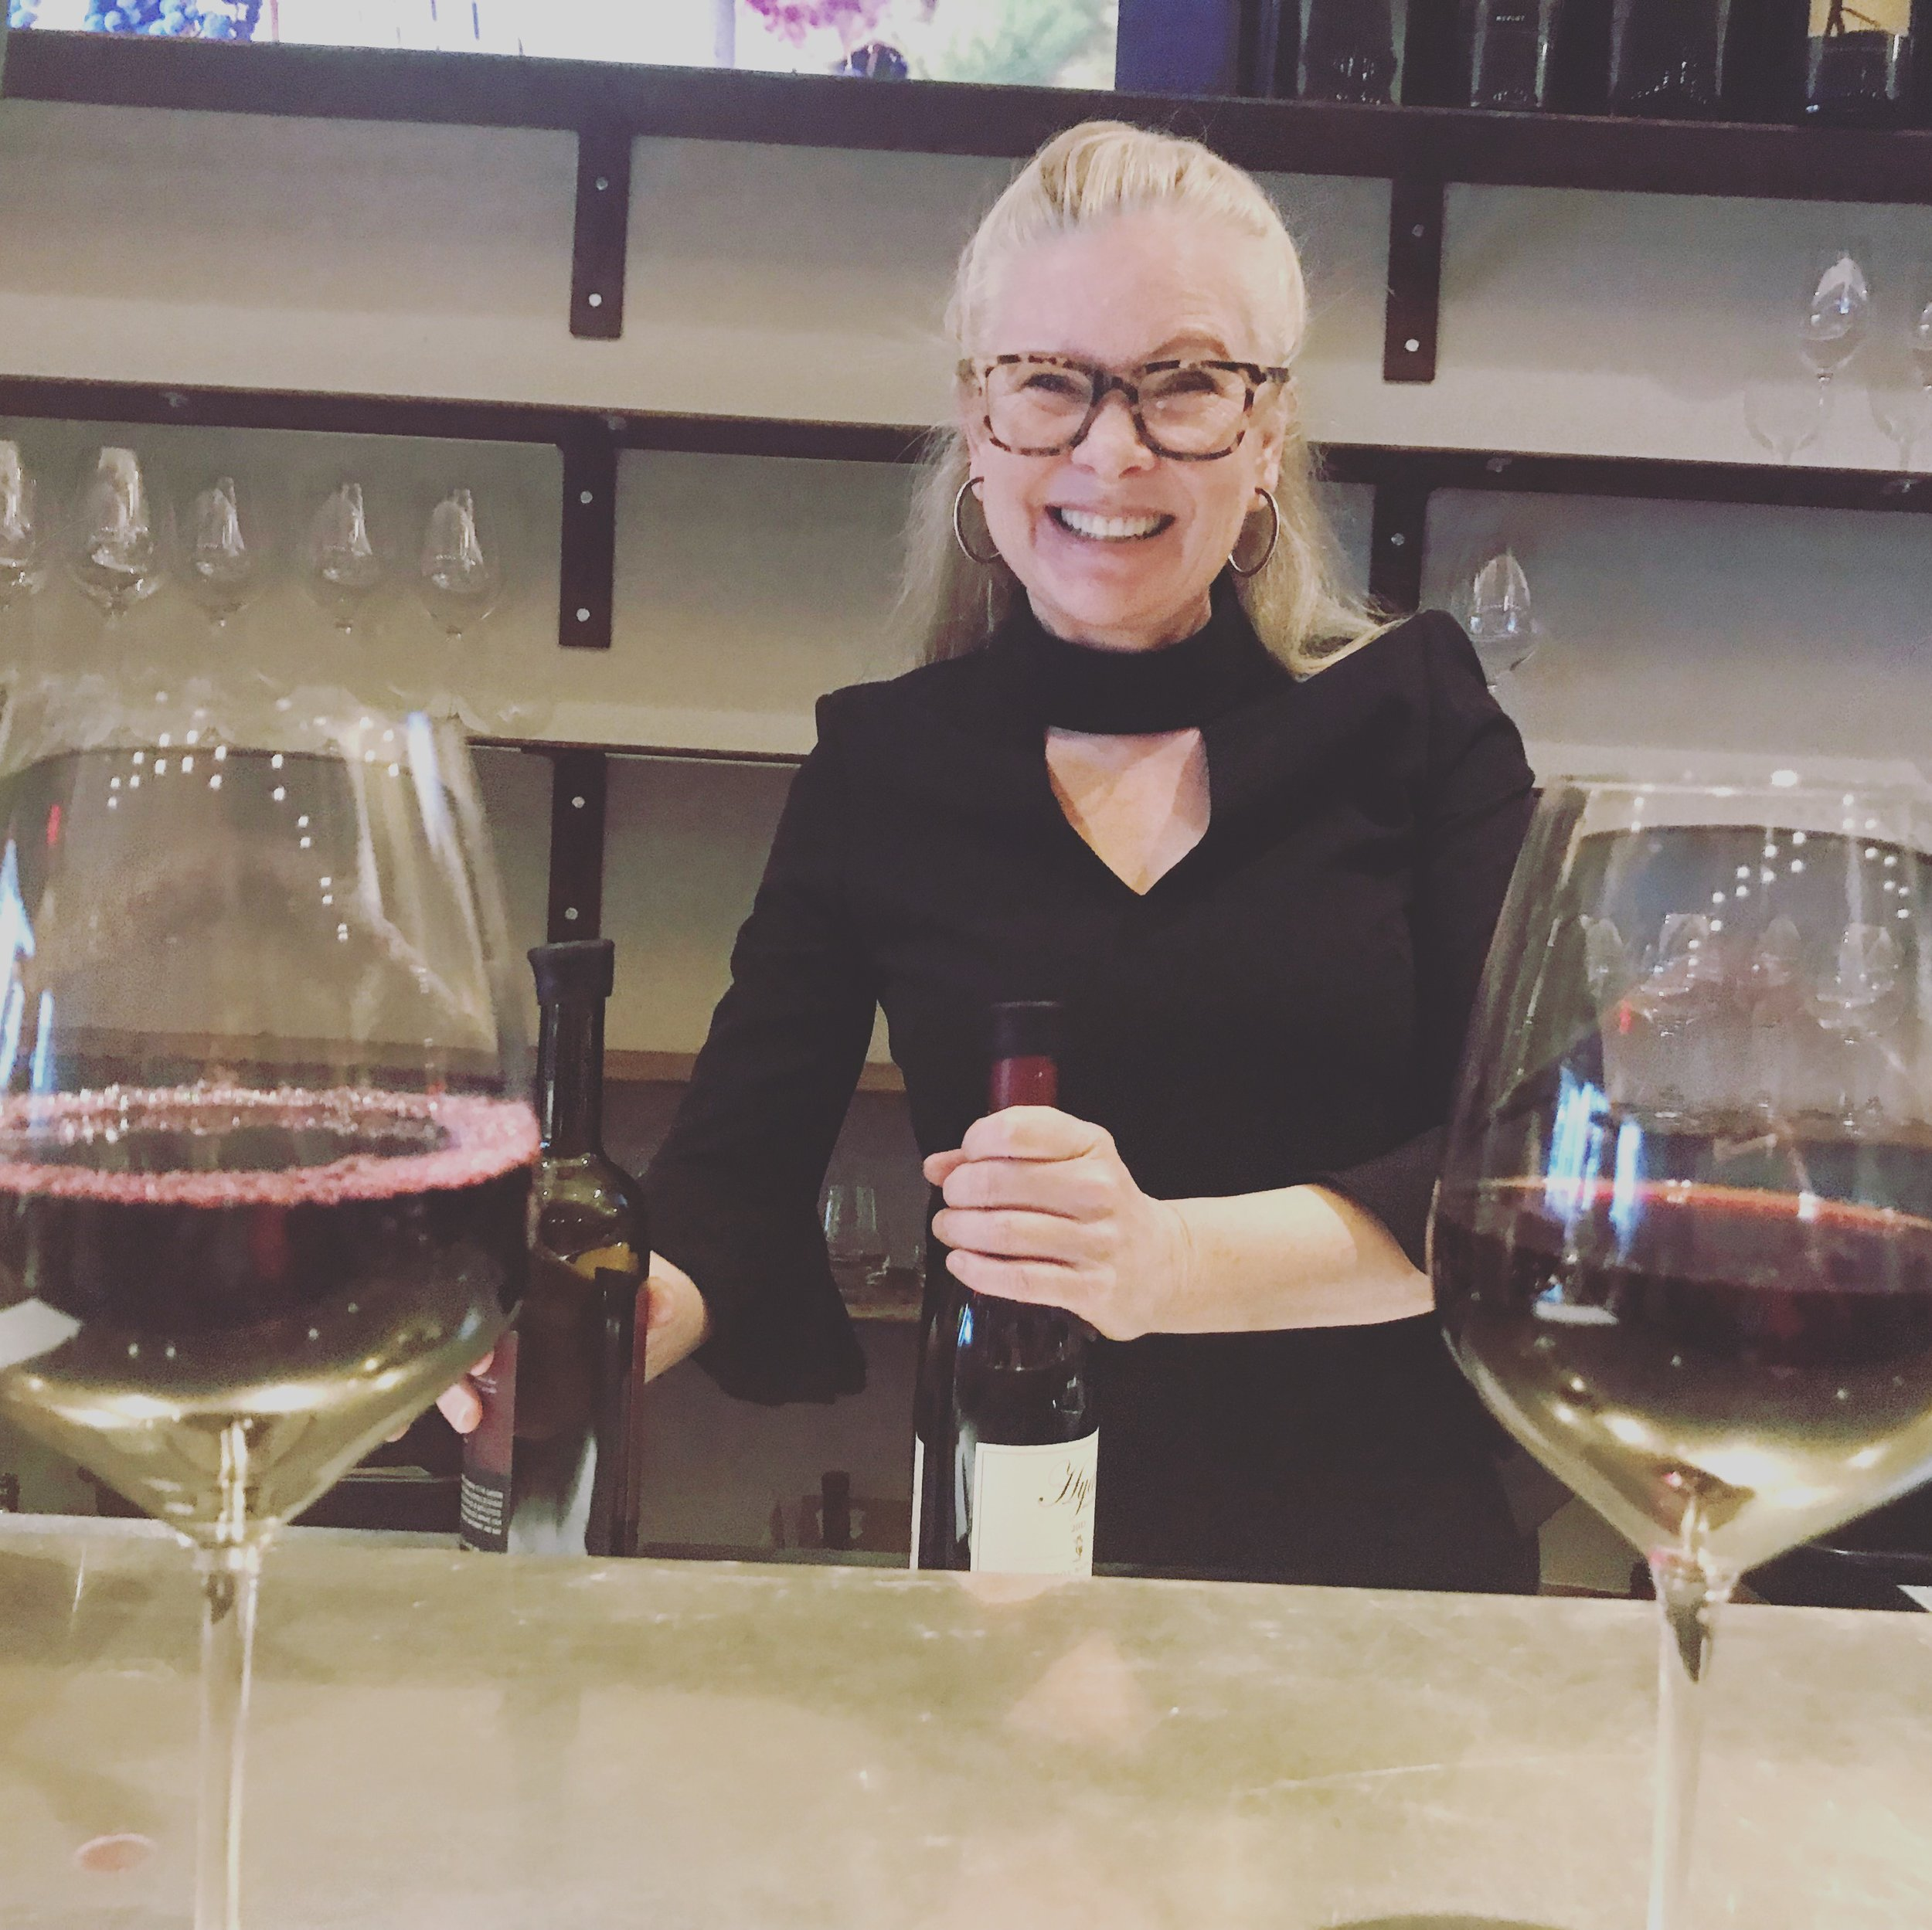 Hi, I'm Layne - This photo is of me guest-bartending at my favorite wine bar (I also am an investor) February 18, 2019. I had a blast!